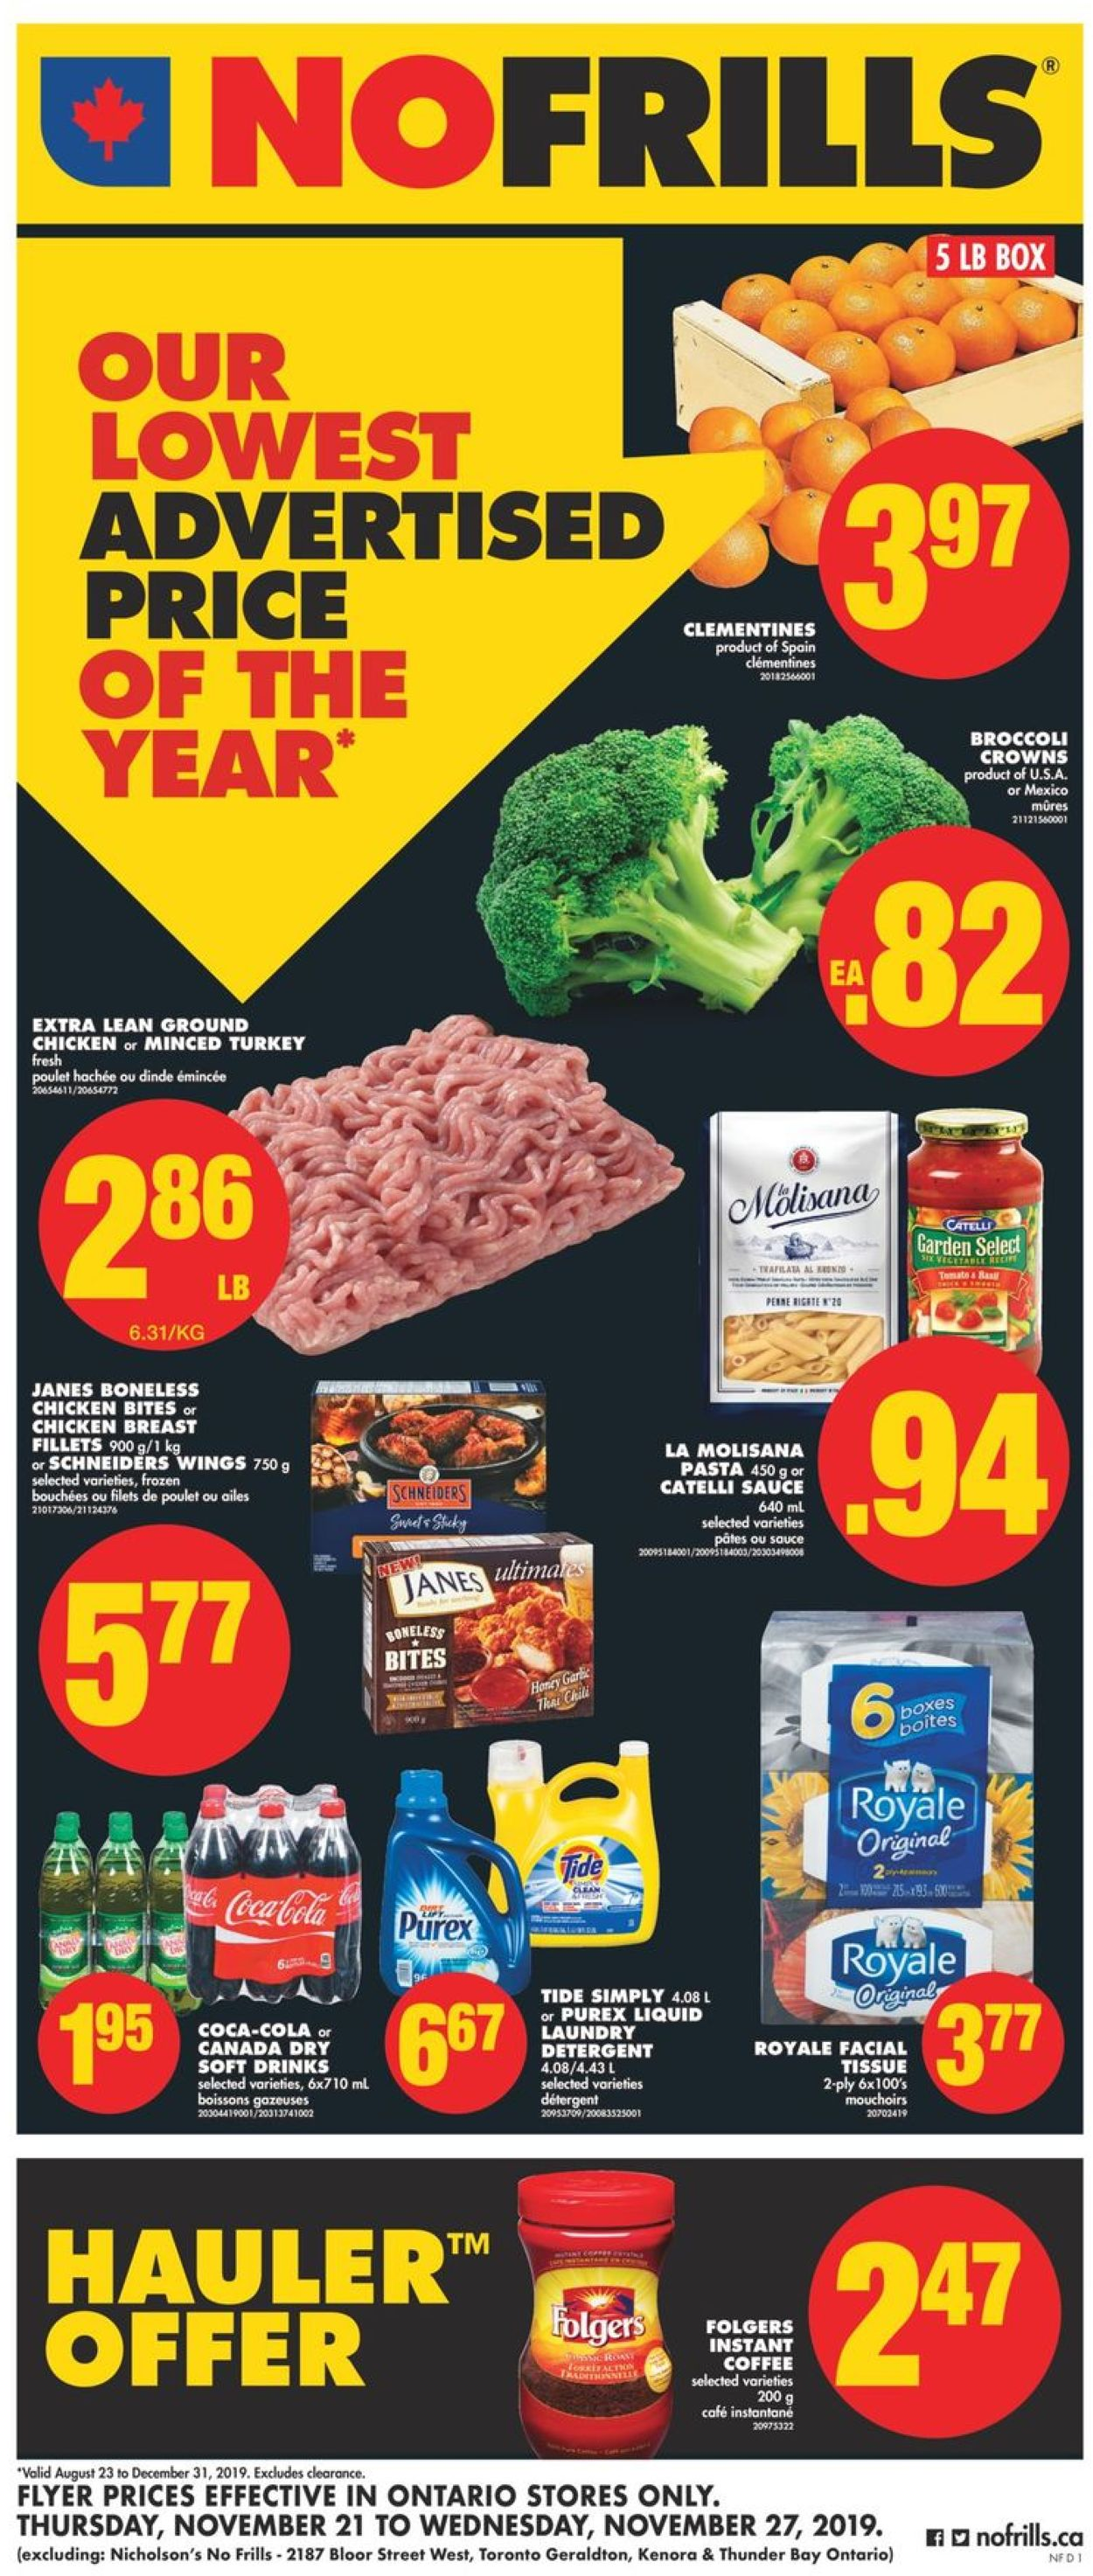 No Frills BLACK FRIDAY FLYER 2019